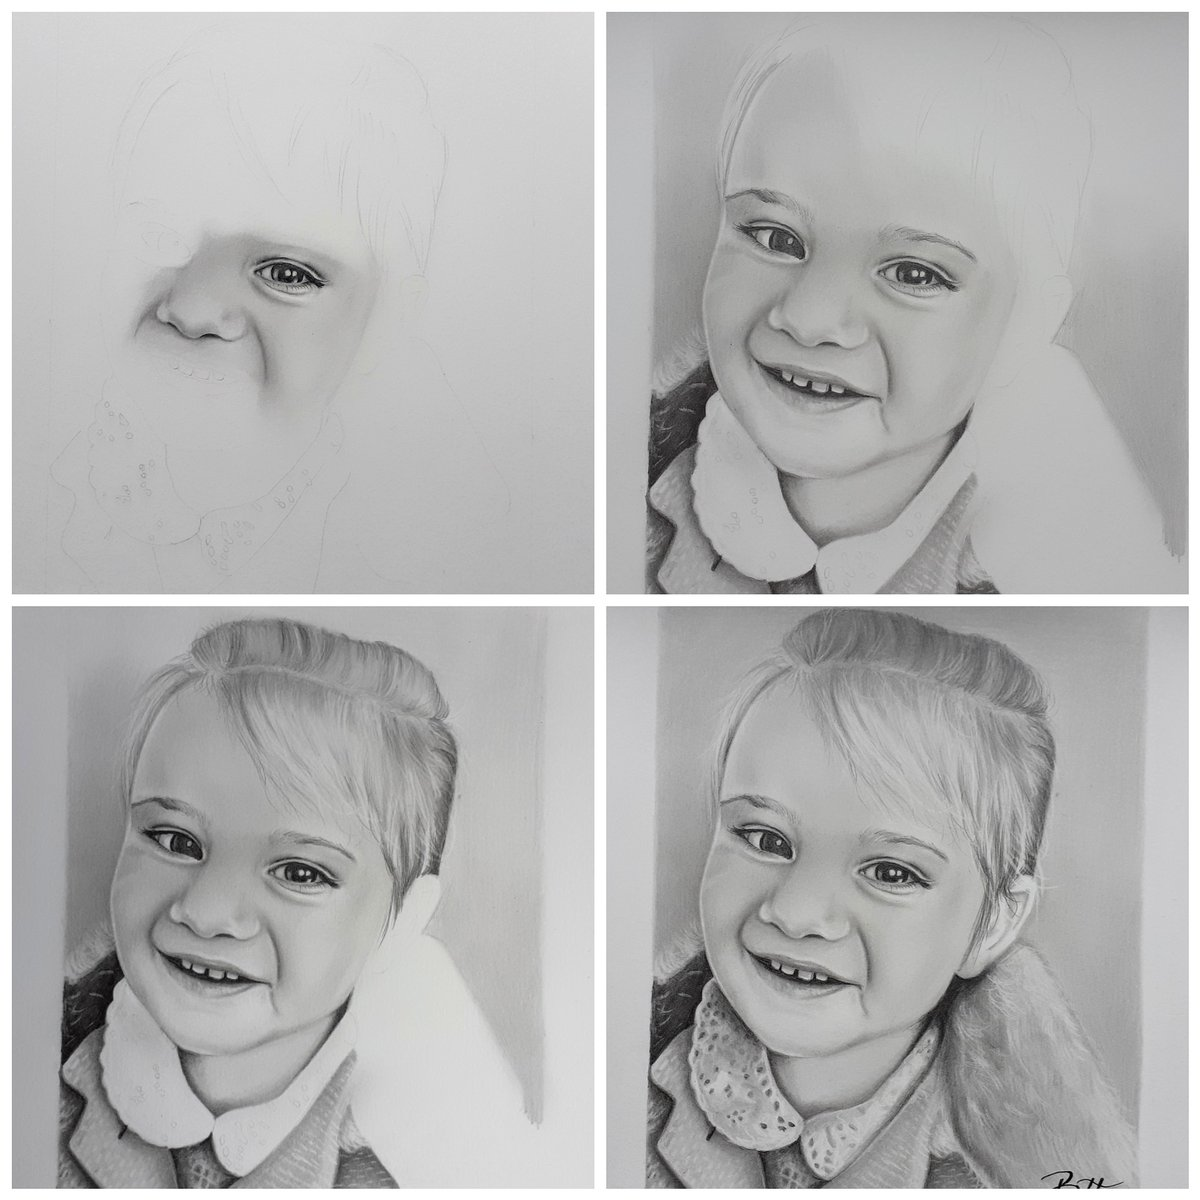 I love looking at the progress of a drawing, so nice when it all comes together after so many hours #artoftheday #artwork #art #ArtistOnTwitter #artist #draw #drawing #portrait #portraitart #portraitartist #graphite #pencilsketch #pencildrawing #pencilart #pencildrawingpic.twitter.com/5SMxgai6mb